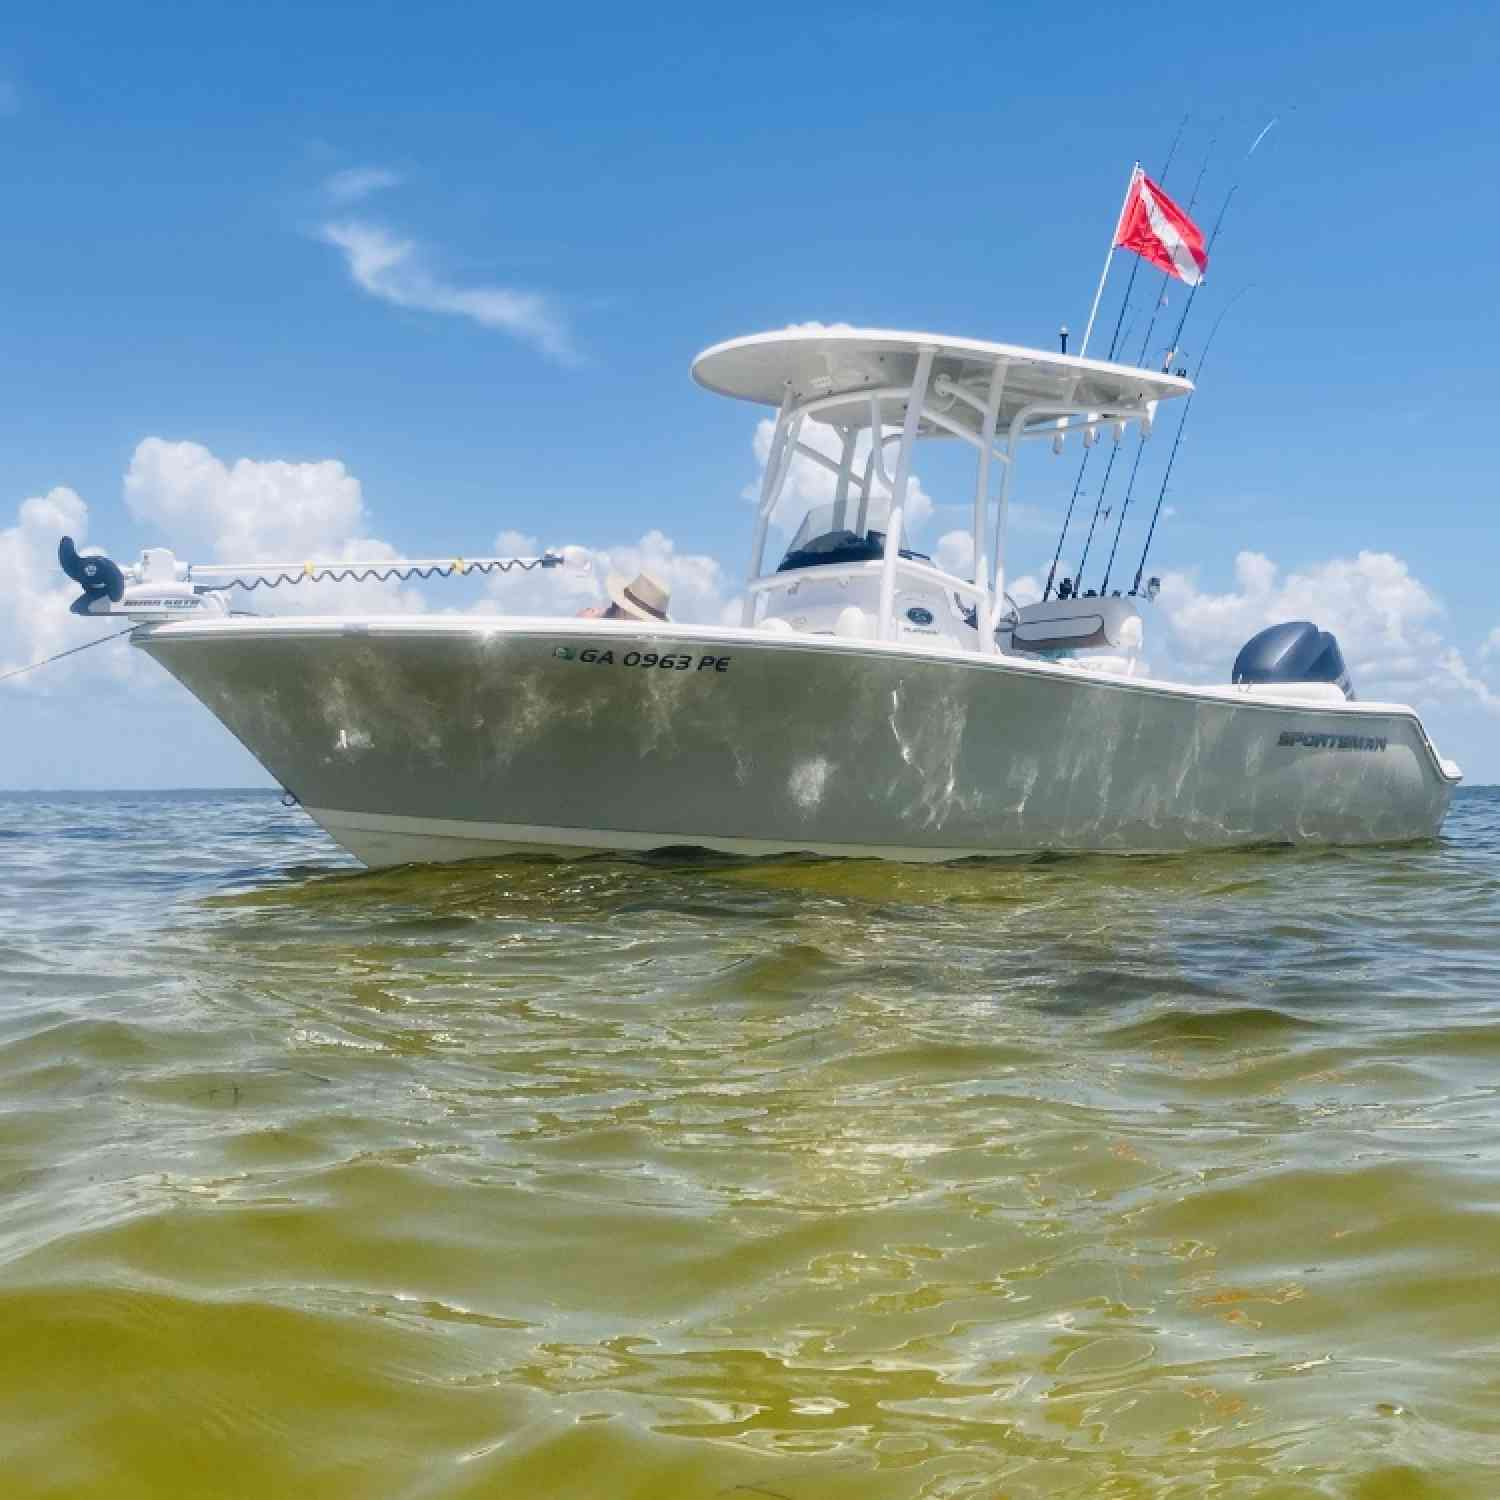 Fished all day and stopped for all aboard to cool off on a off shore sandbar.